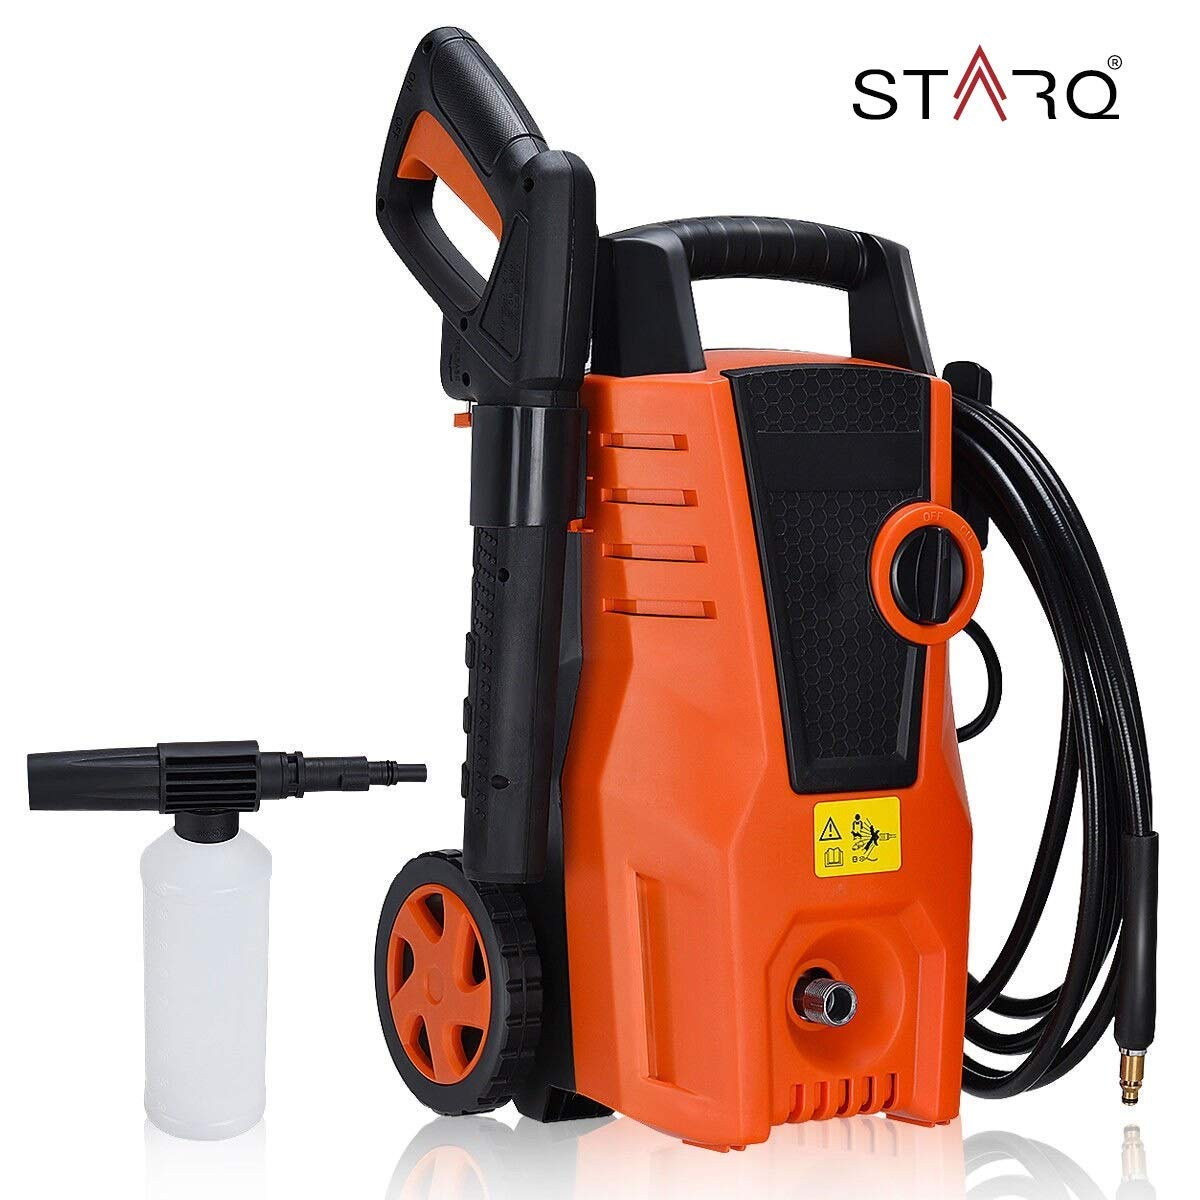 STARQ Portable High Pressure Washer 1400 Watts with Wheels